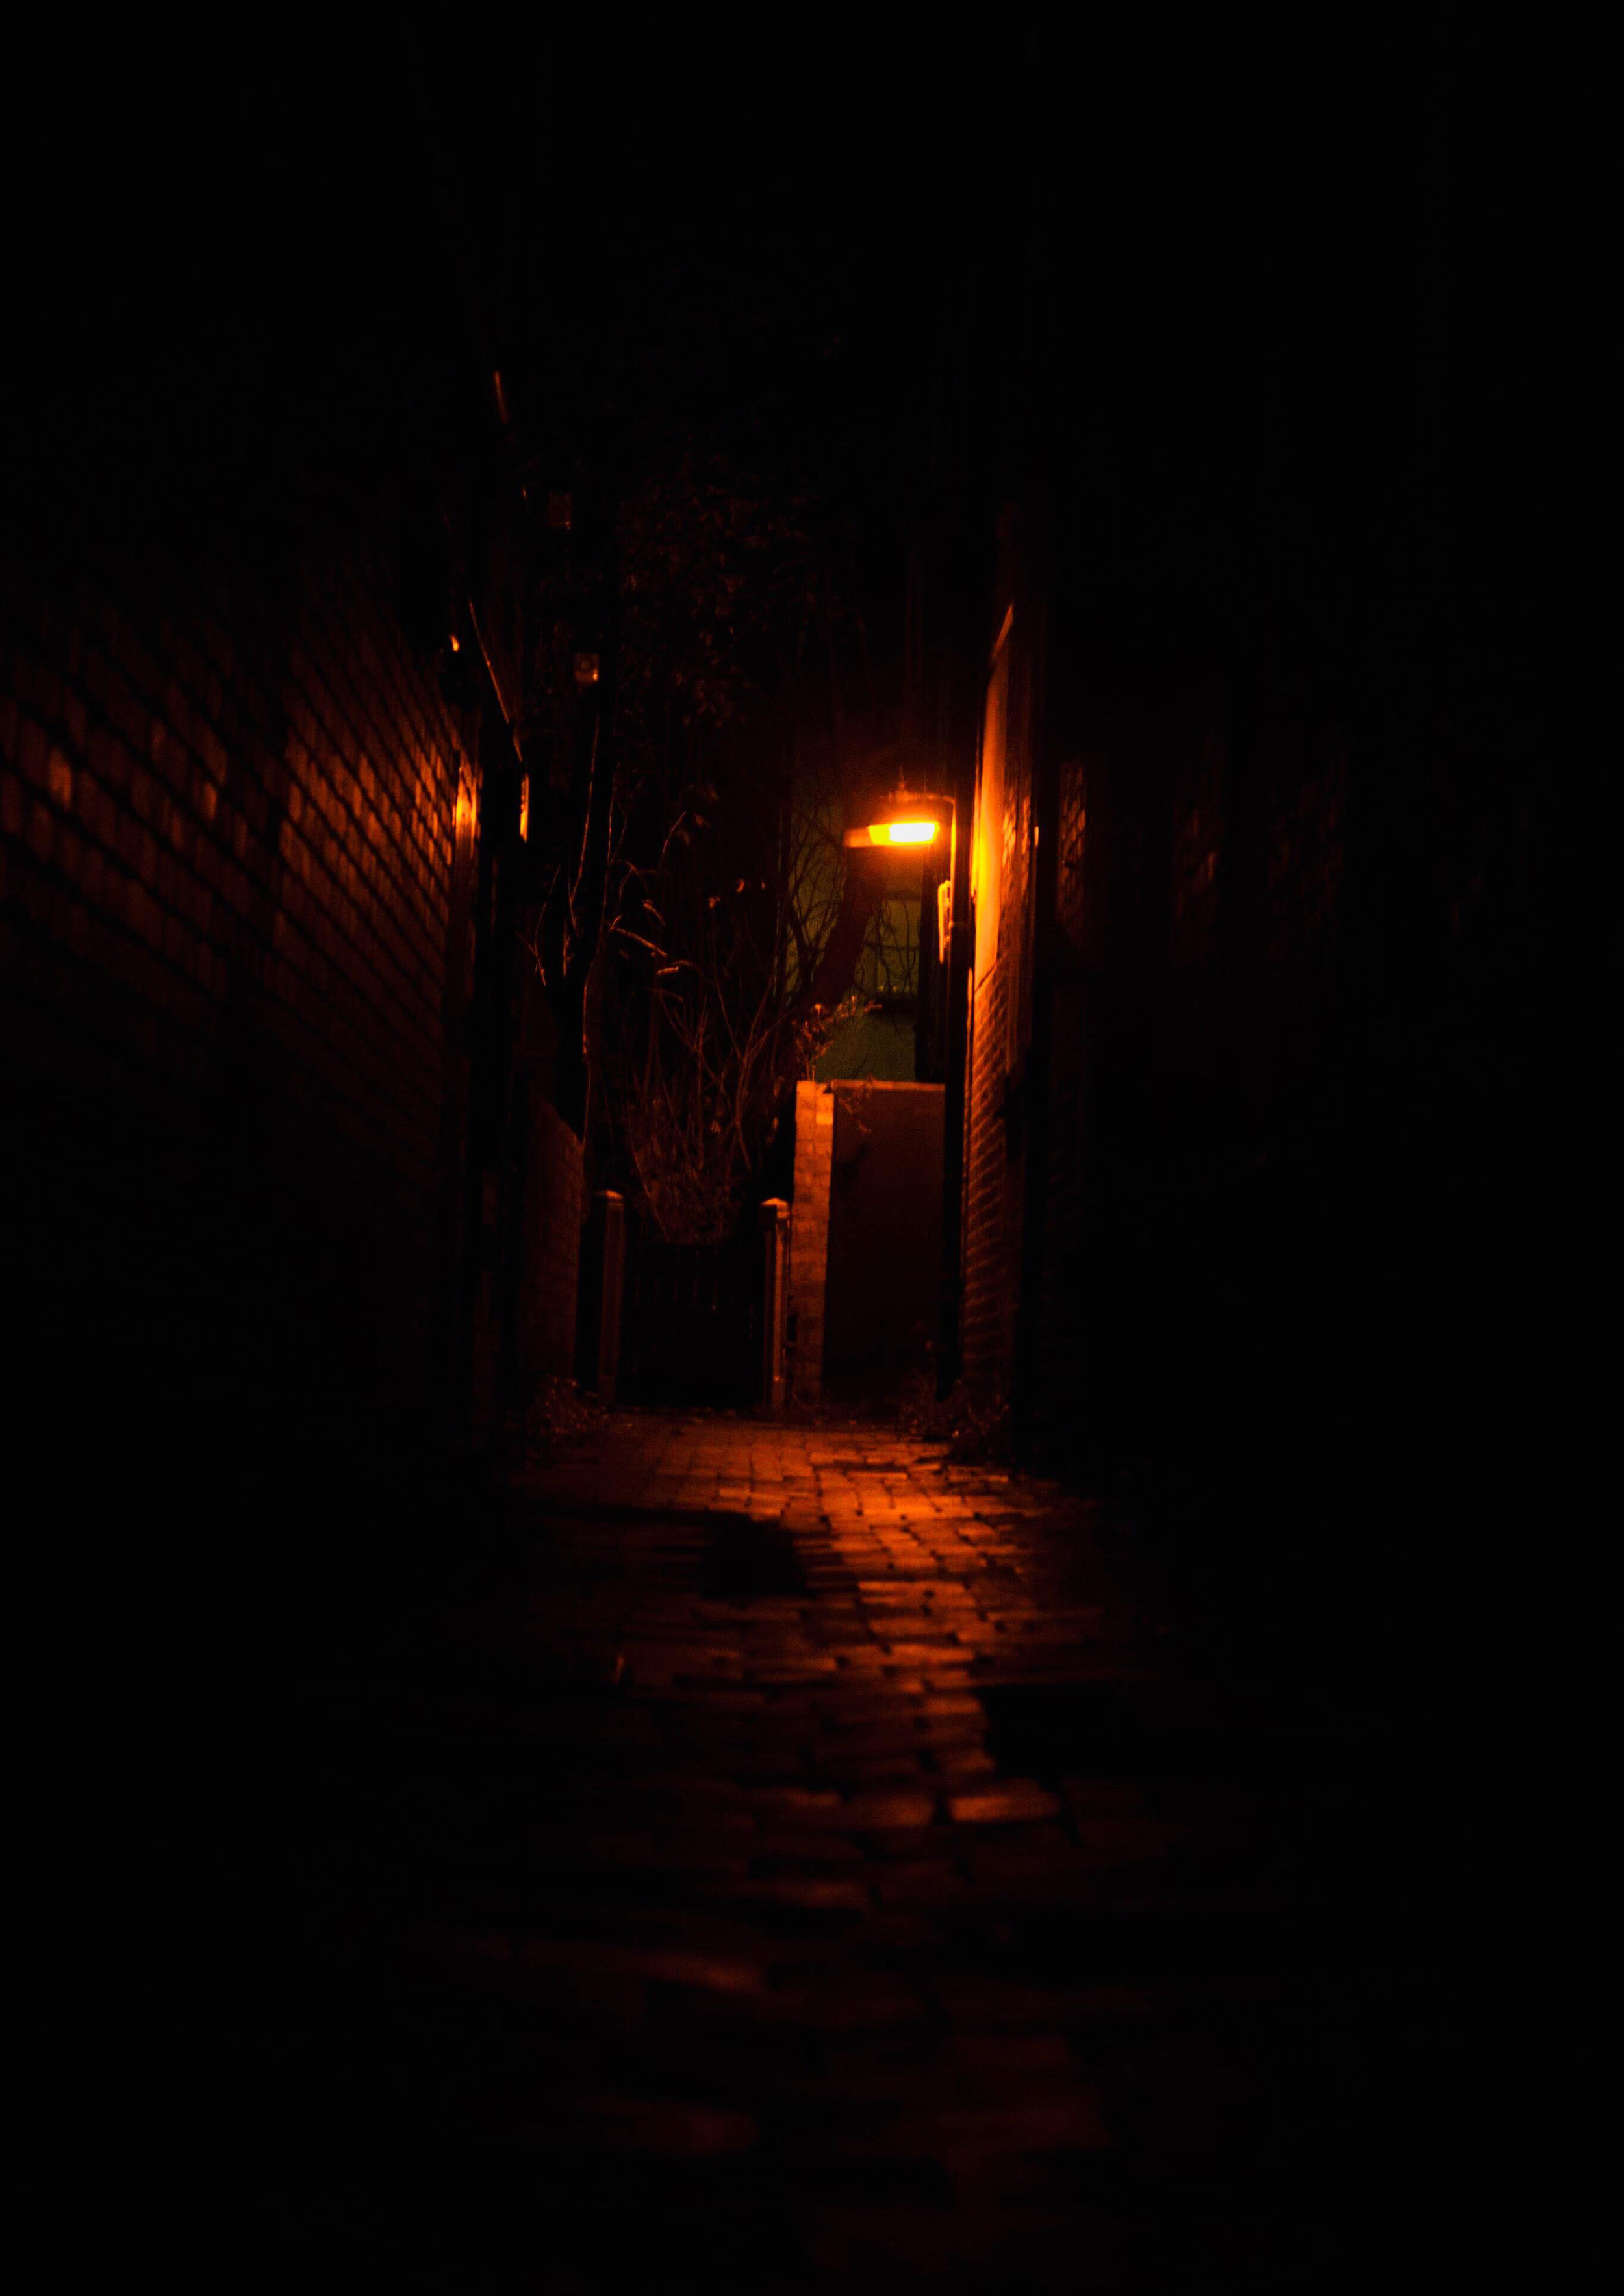 This image was taken in alley way with a single light I believe that the light will get dinner or was malfunctioning giving that Orangey glow. I took this image because I wanted to Not have all of my images with just people in them. In this image I think like how the orange light does not write off the whole alleyway instead liked up each into virtual brick giving the image more detail and texture. However, I could have done using a different man with a wider aperture to get more light and a better finish this image.